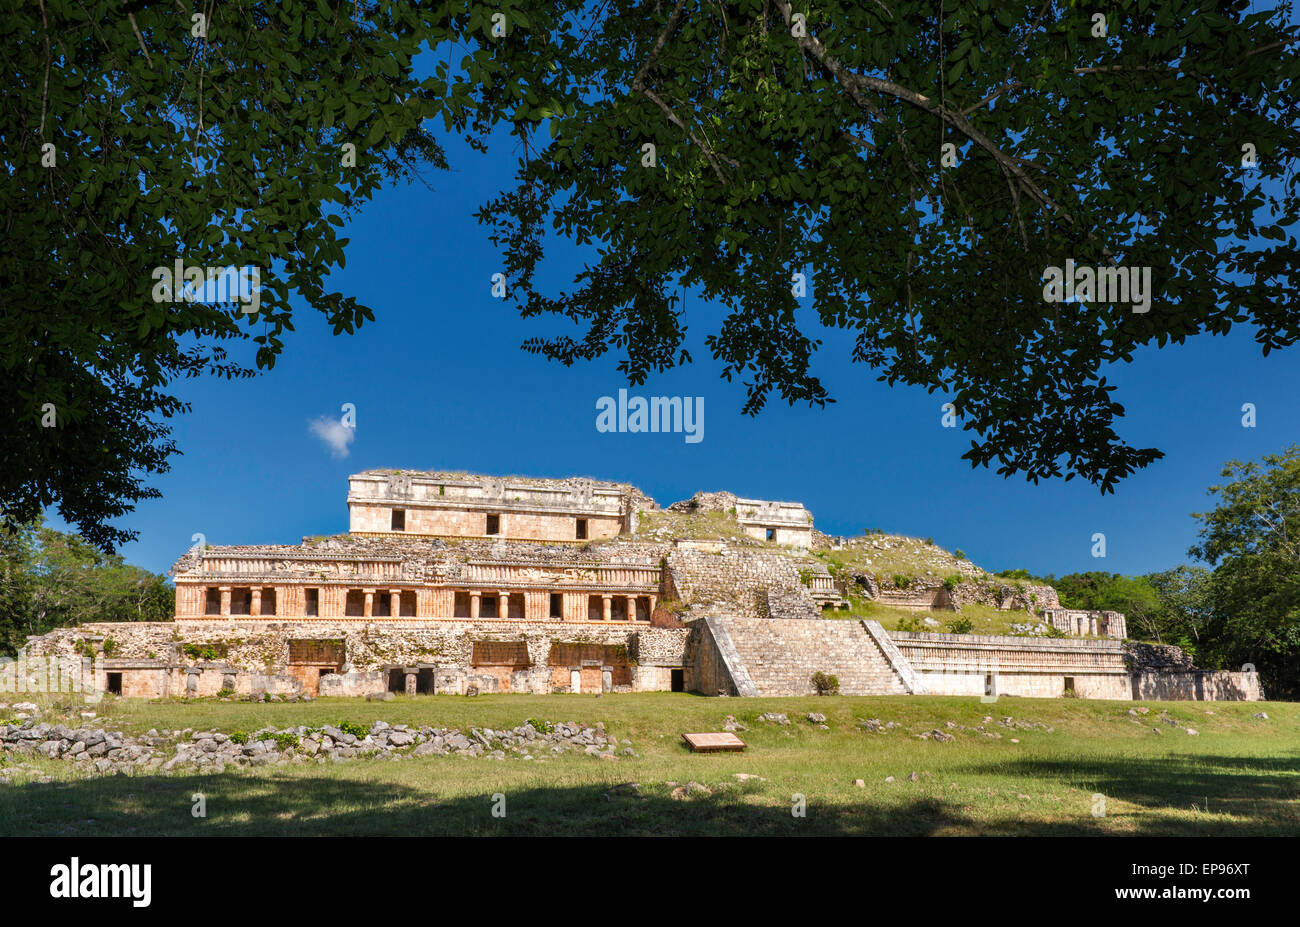 El Palacio Norte, Maya ruins at Sayil archaelogical site, UNESCO World Heritage Site, Ruta Puuc, Yucatan state, - Stock Image